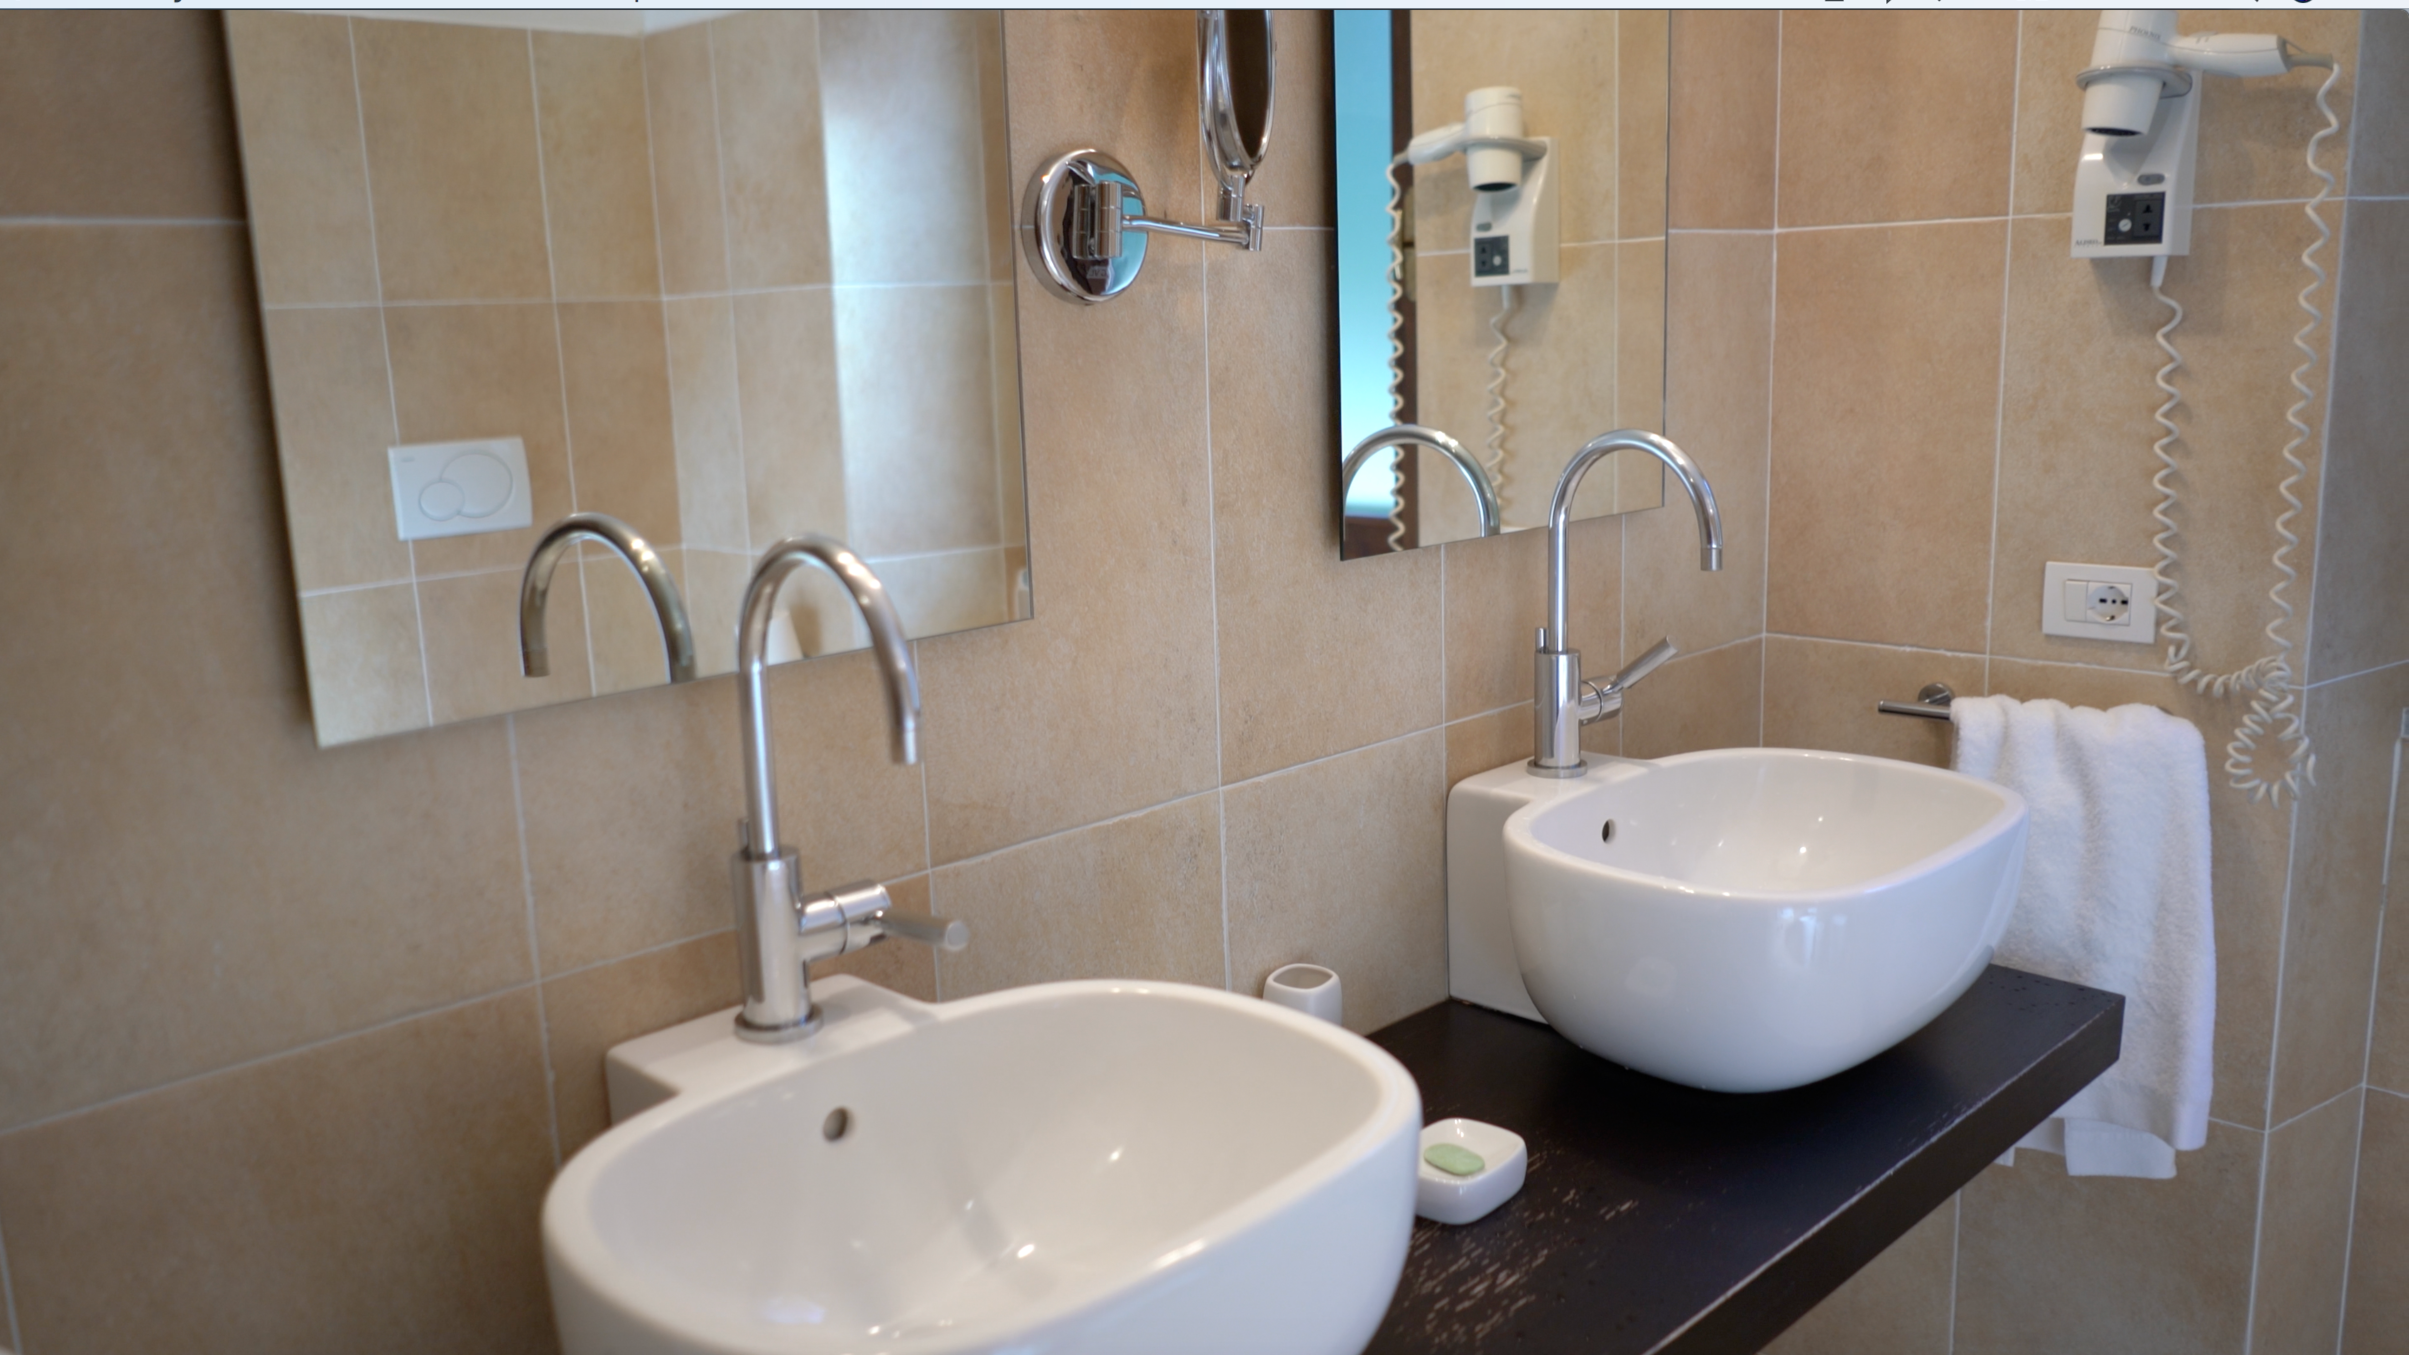 The double sink in the very spacious and beautifully appointed bathroom.